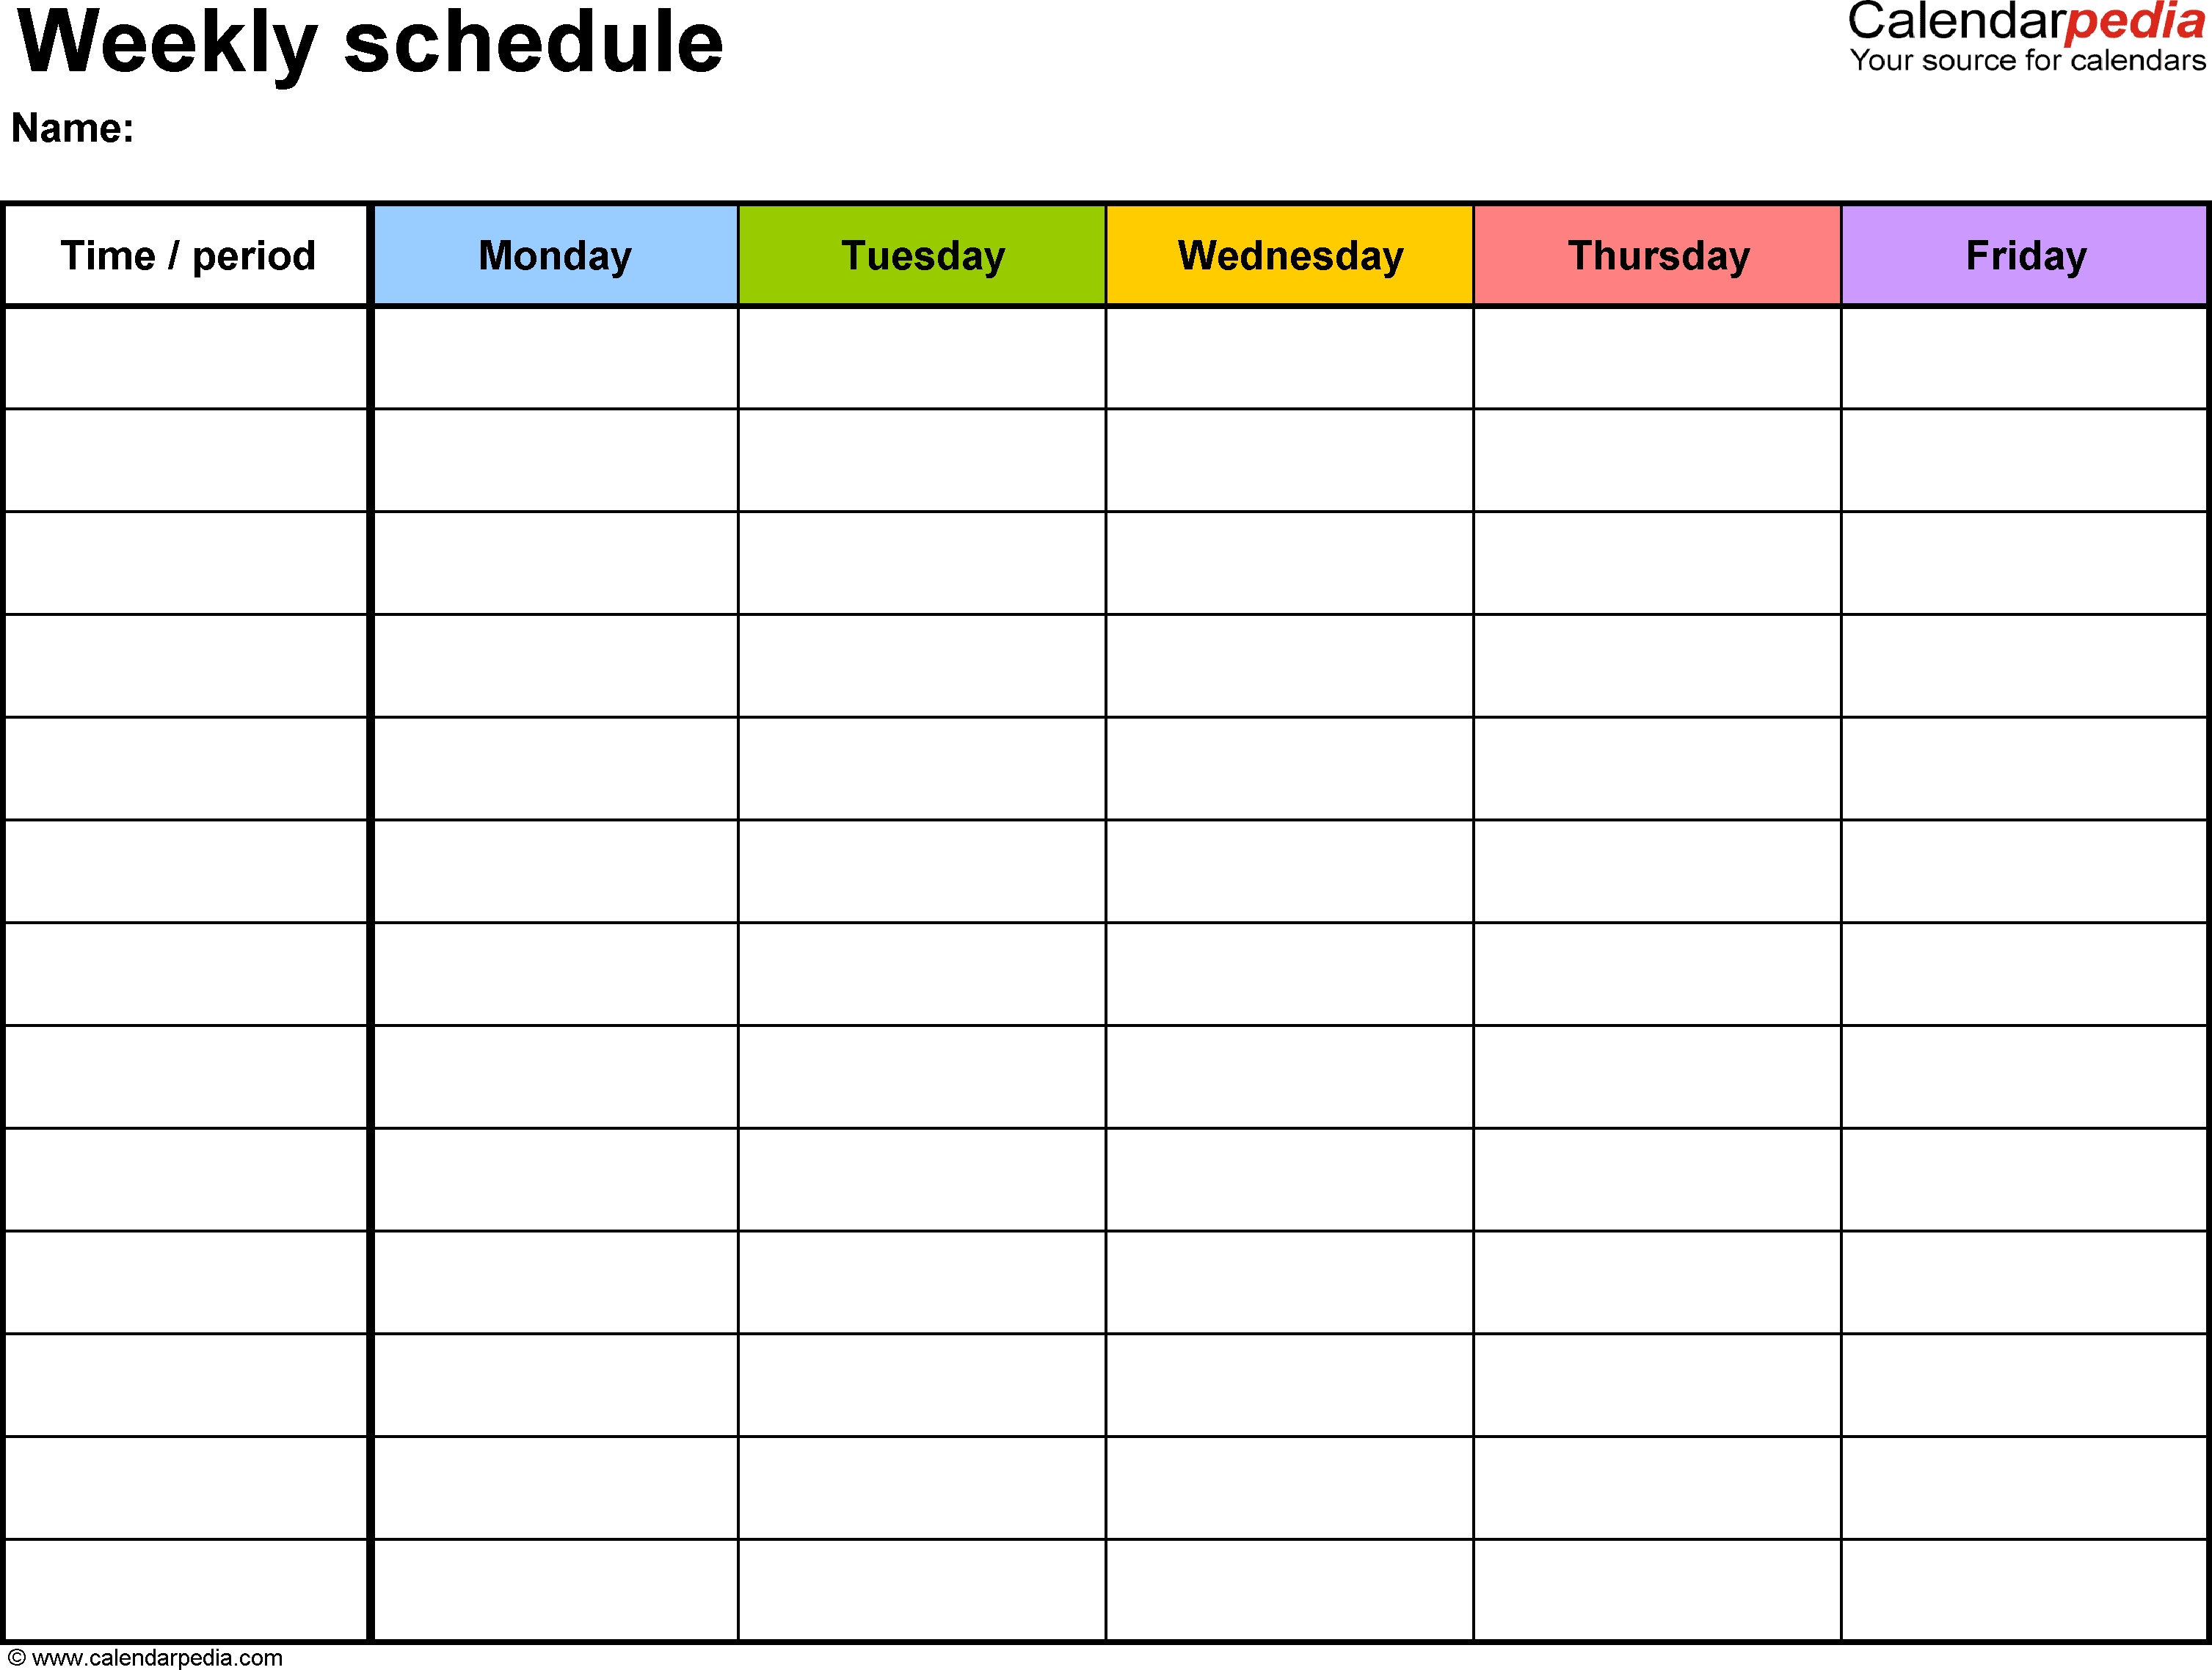 Free Weekly Schedule Templates For Word - 18 Templates pertaining to 7 Day Week Calendar Template